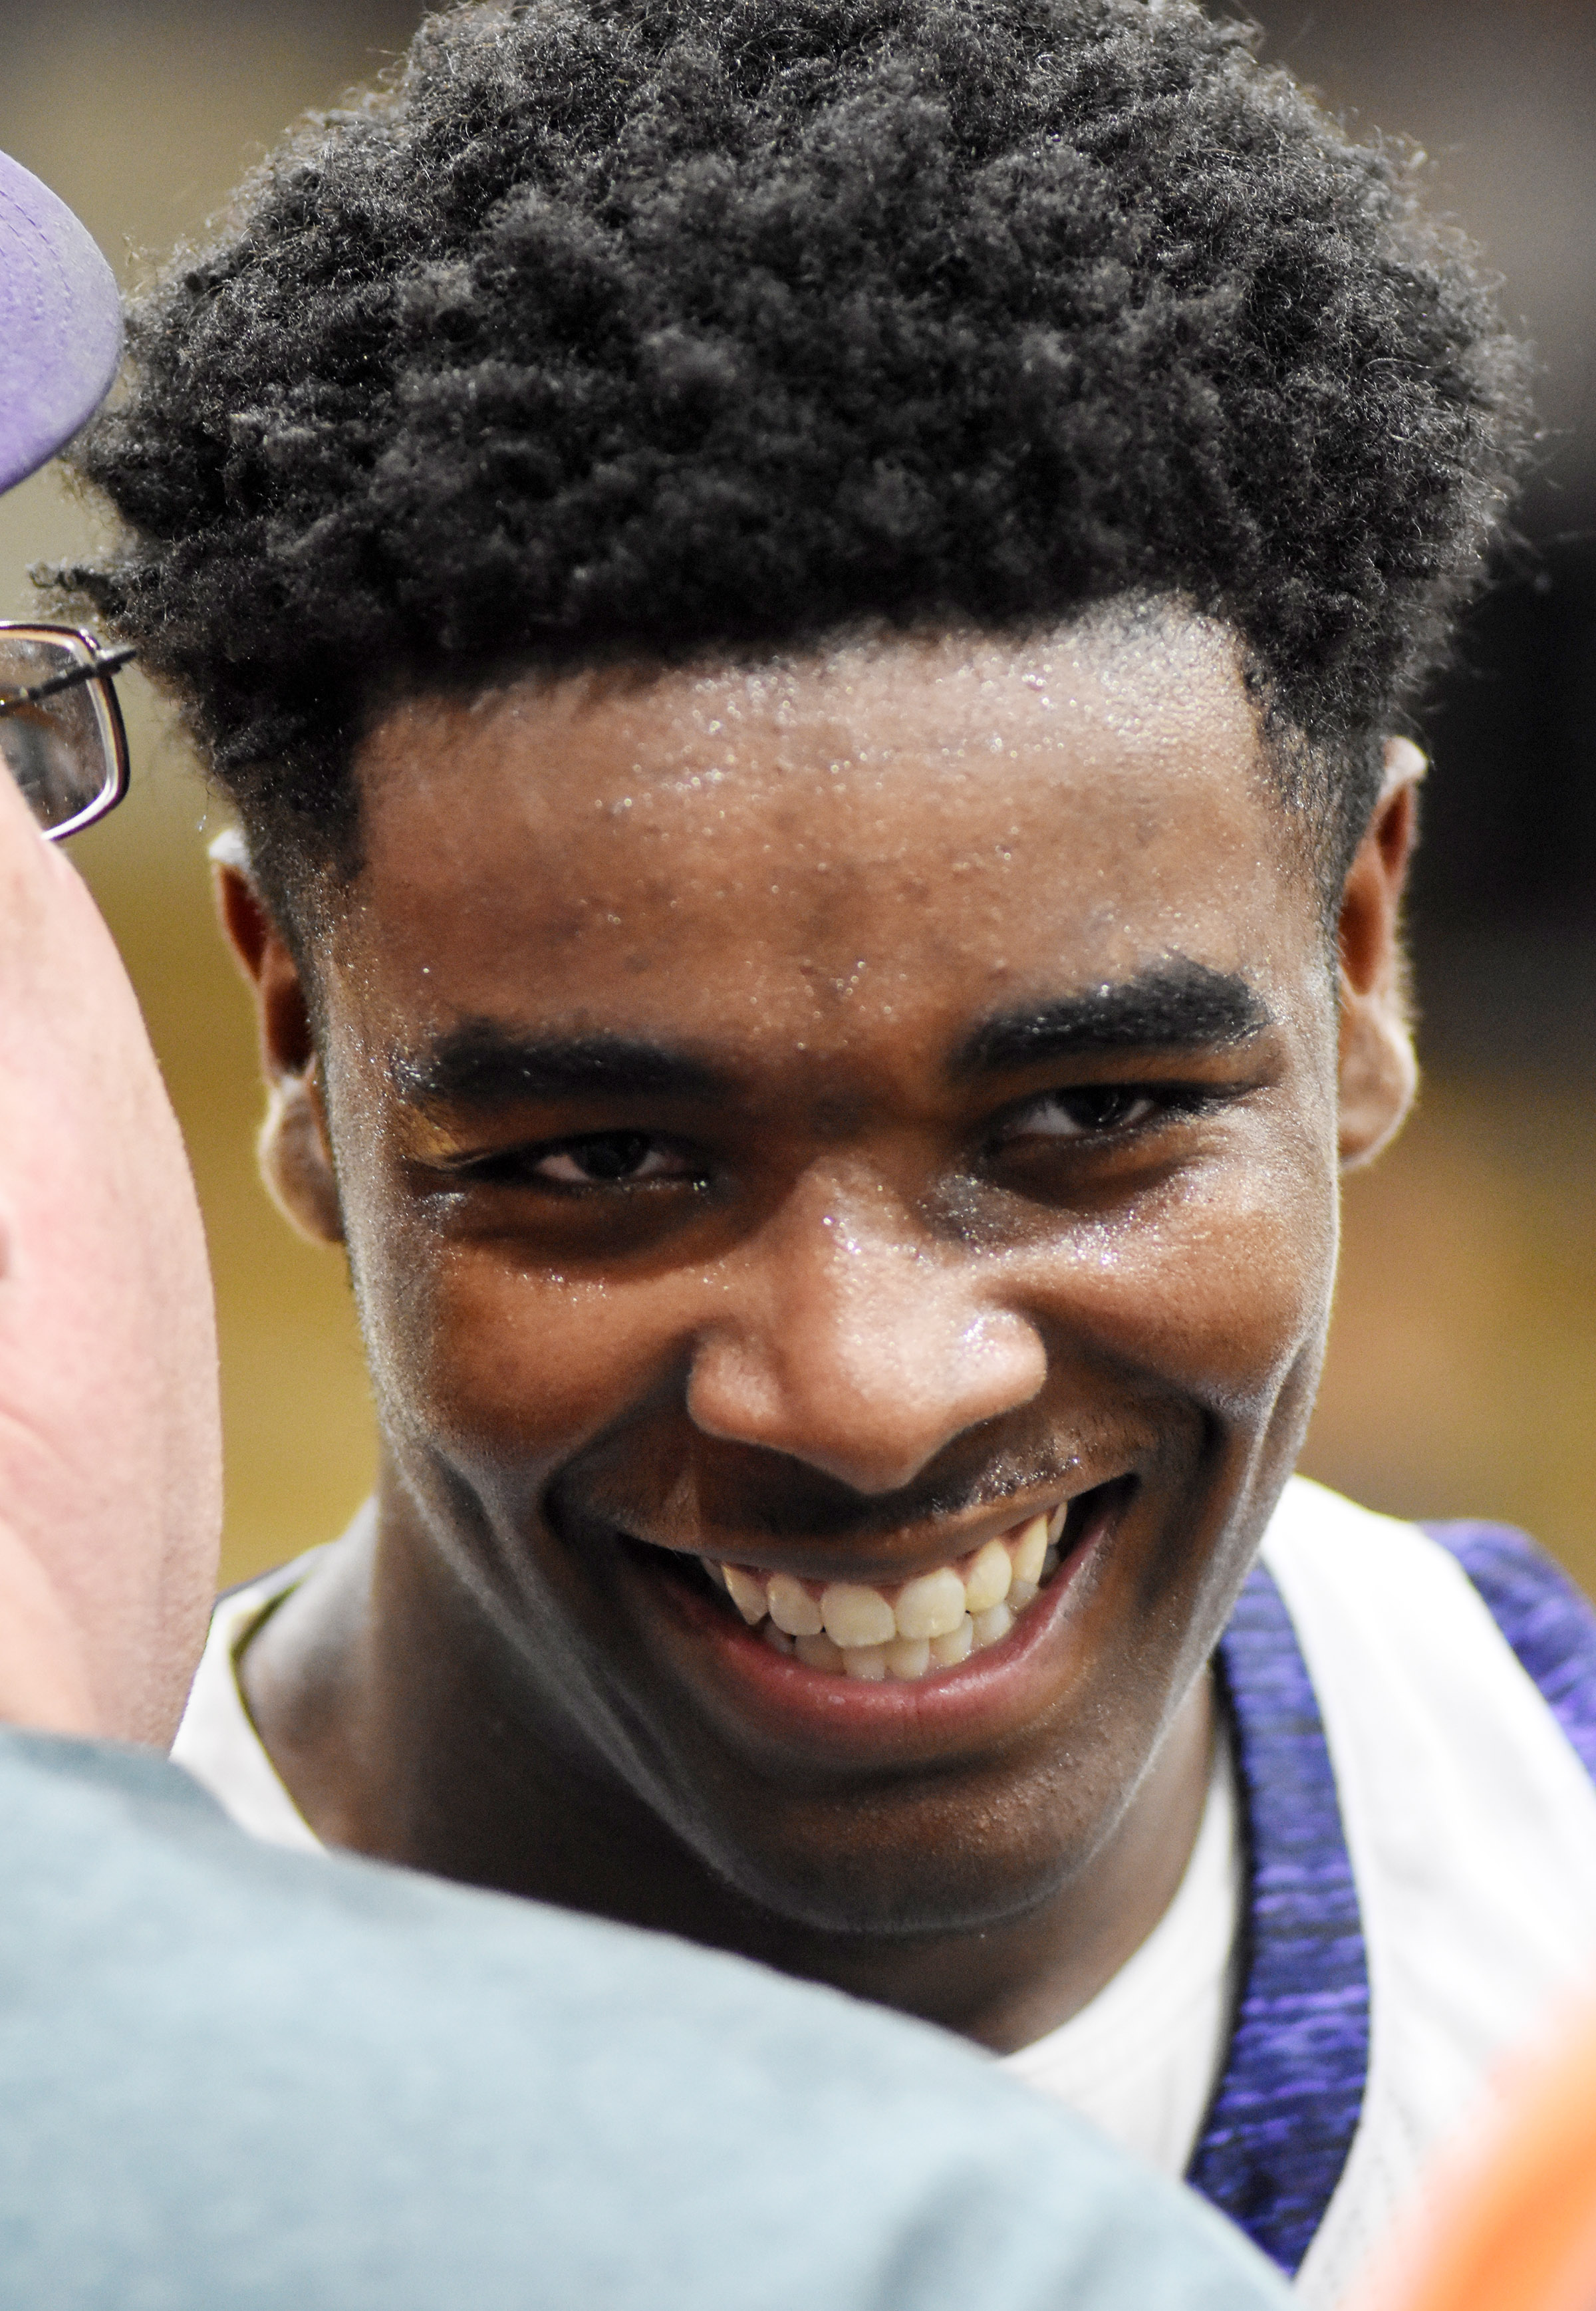 CHS senior Chanson Atkinson smiles as he is congratulated.